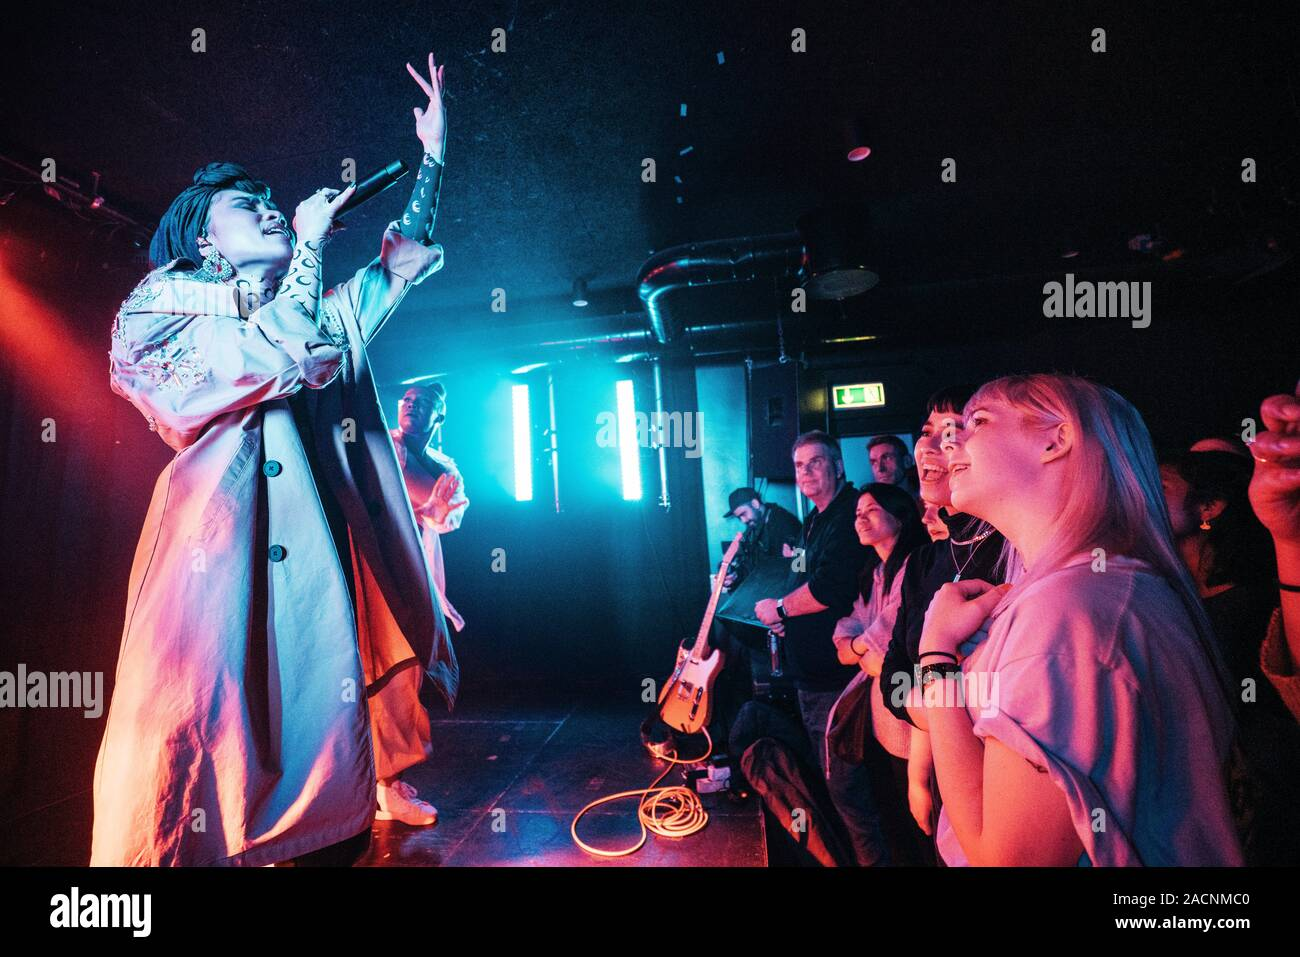 Copenhagen, Denmark. 02nd Dec, 2019. The Malaysian singer and songwriter Yuna performs a live concert at BETA in Copenhagen. (Photo Credit: Gonzales Photo/Mathias Kristensen/Alamy Live News). Stock Photo